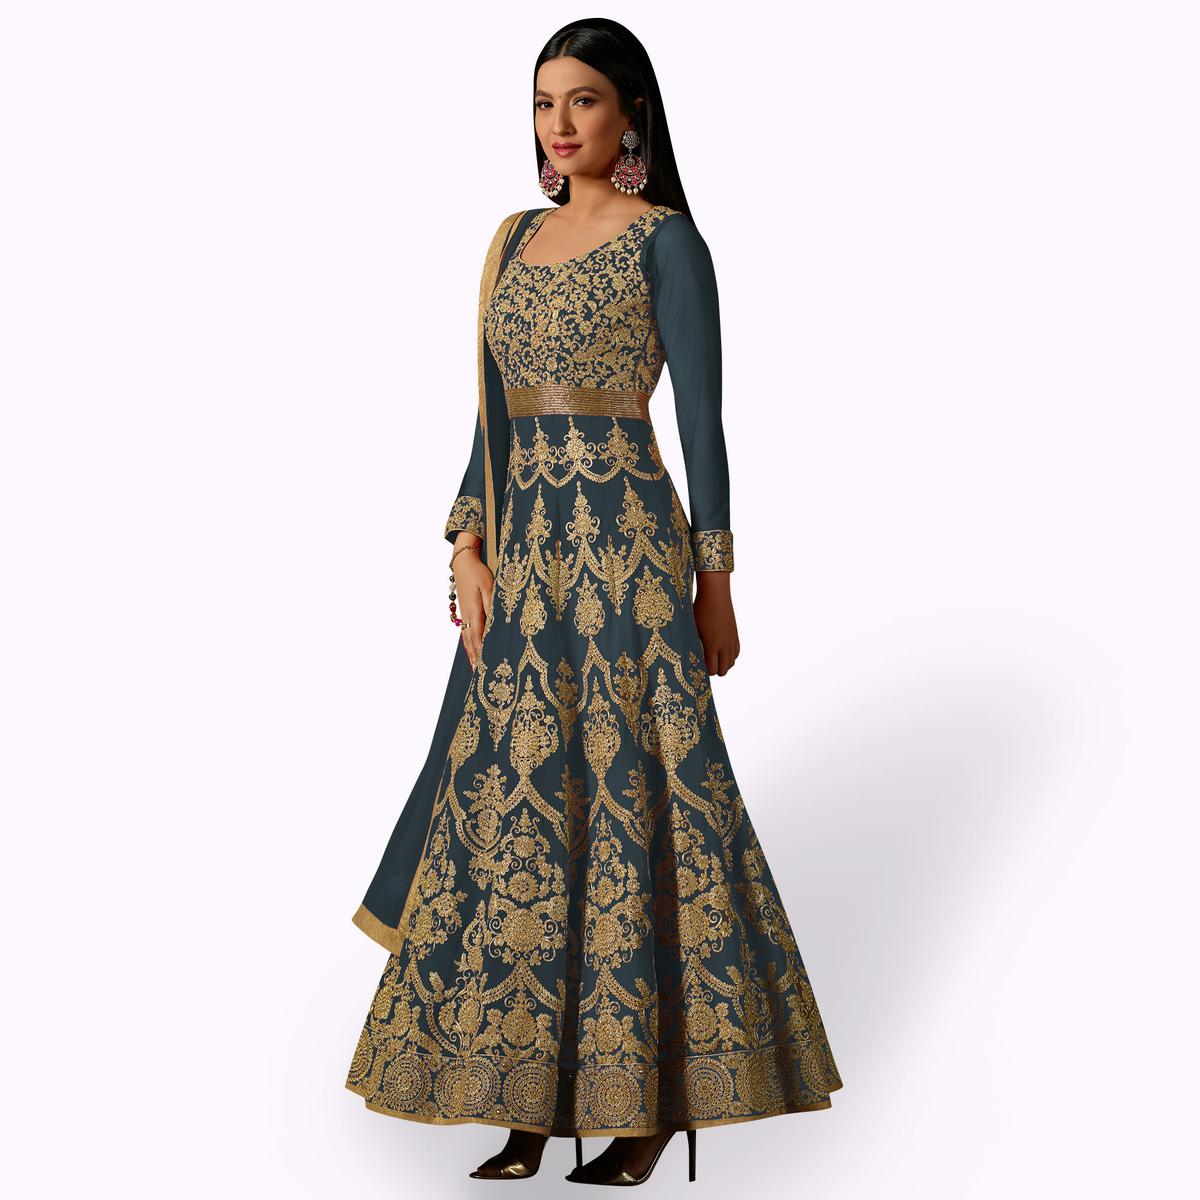 34243b485 Buy Amazing Light Grey Colored Partywear Embroidered Georgette Anarkali  Suit online India